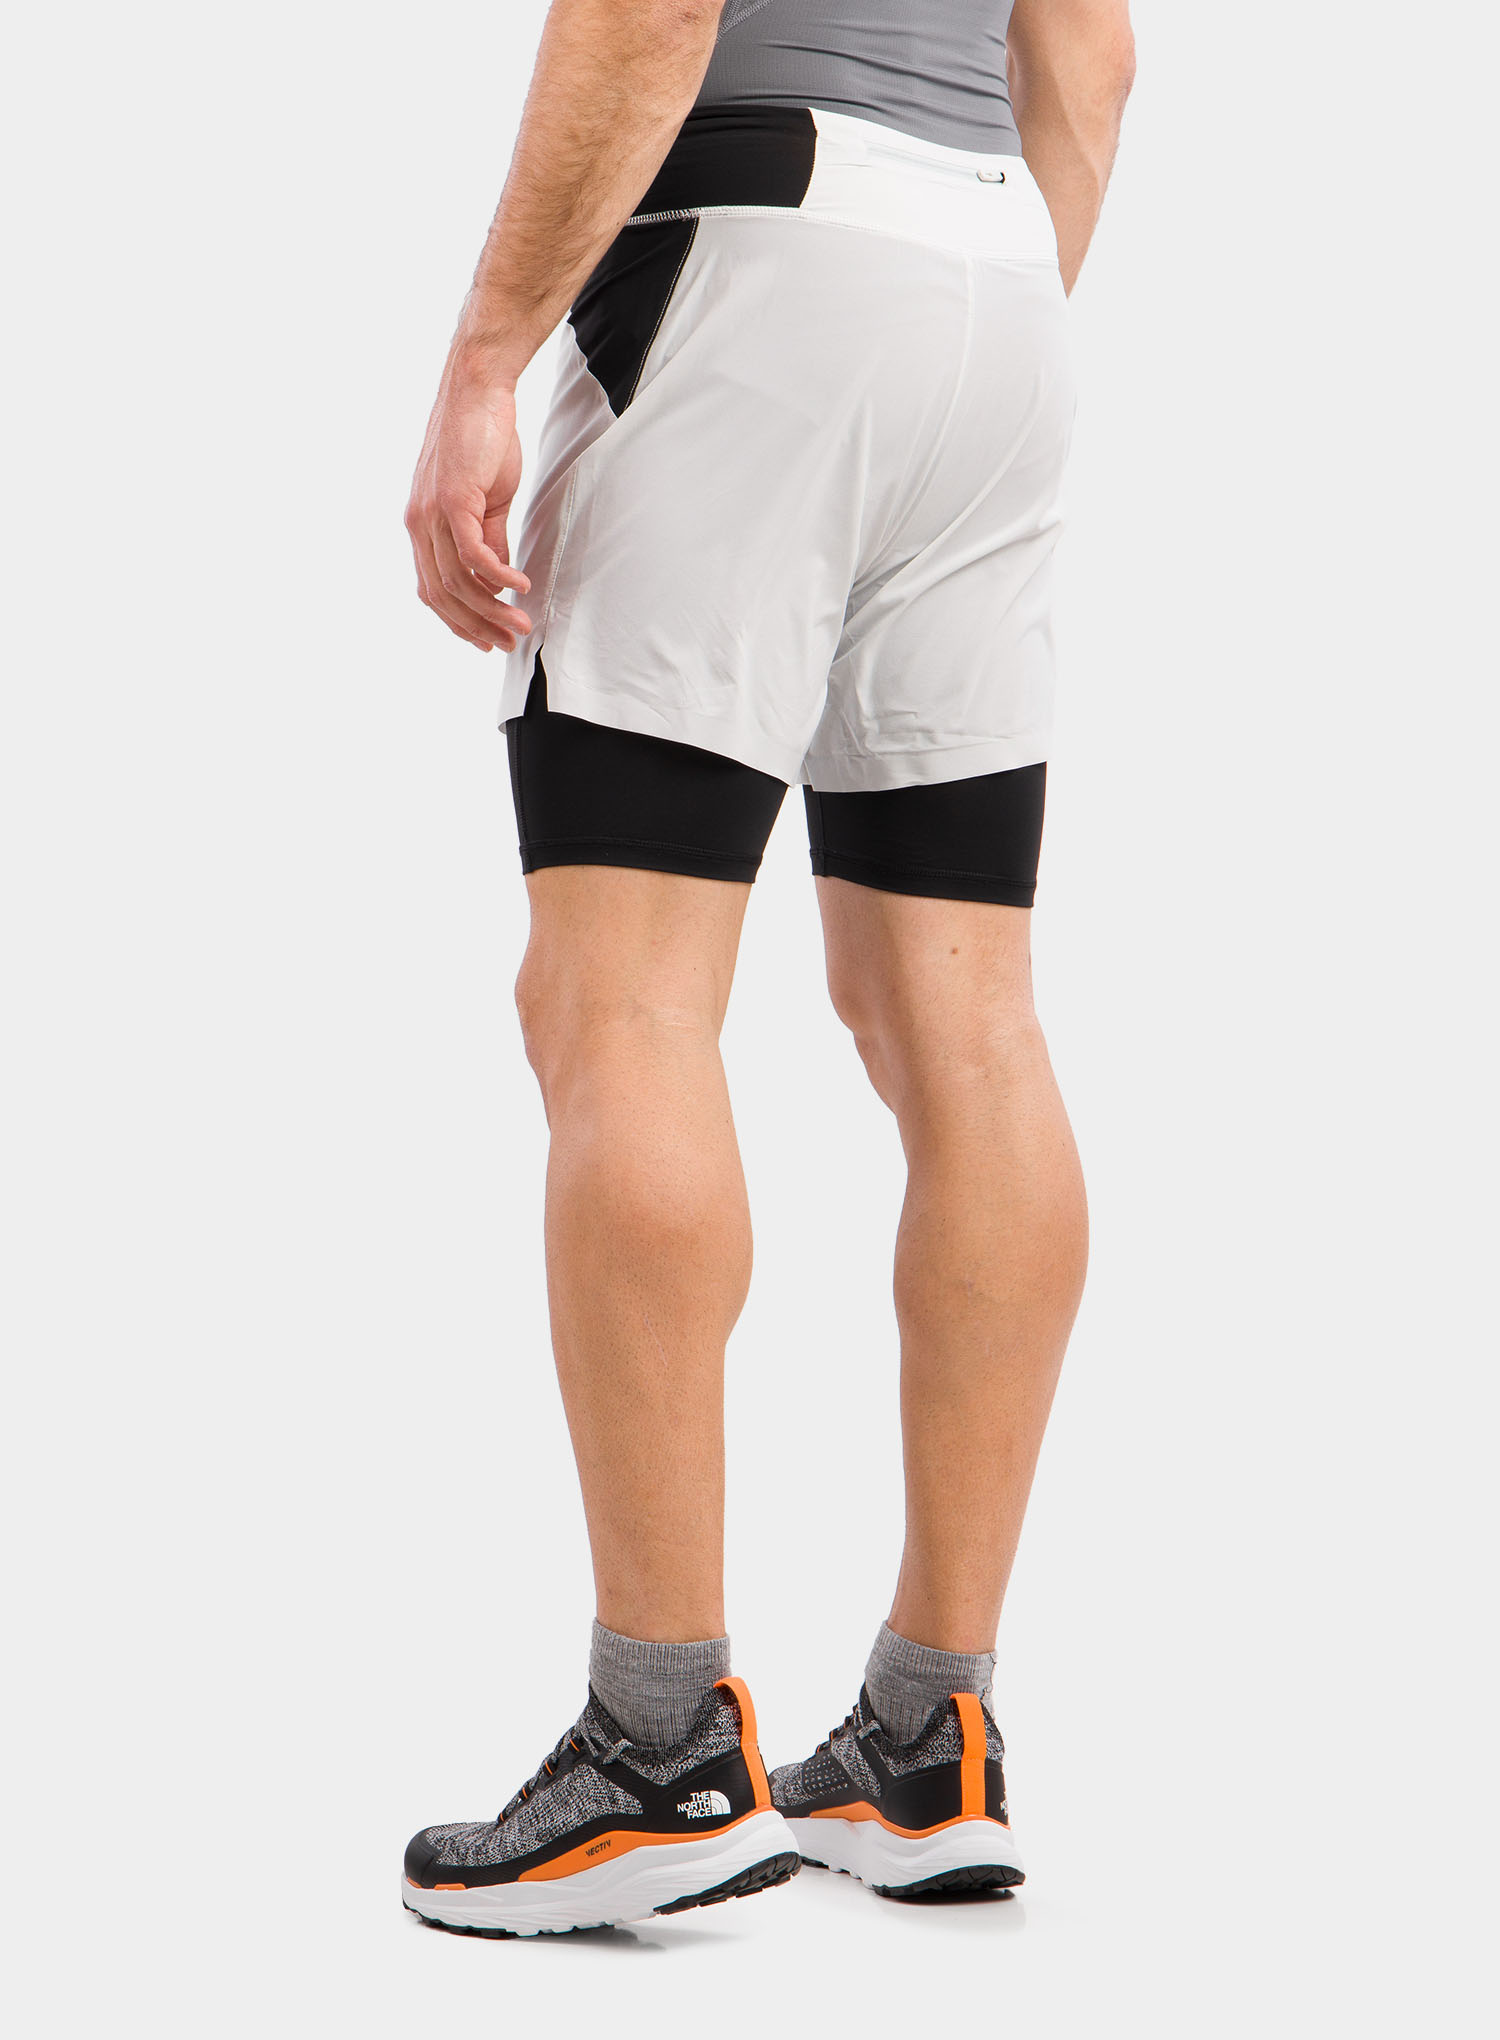 Spodenki The North Face Circadian Comp Lined Short - grey/blk - zdjęcie nr. 2